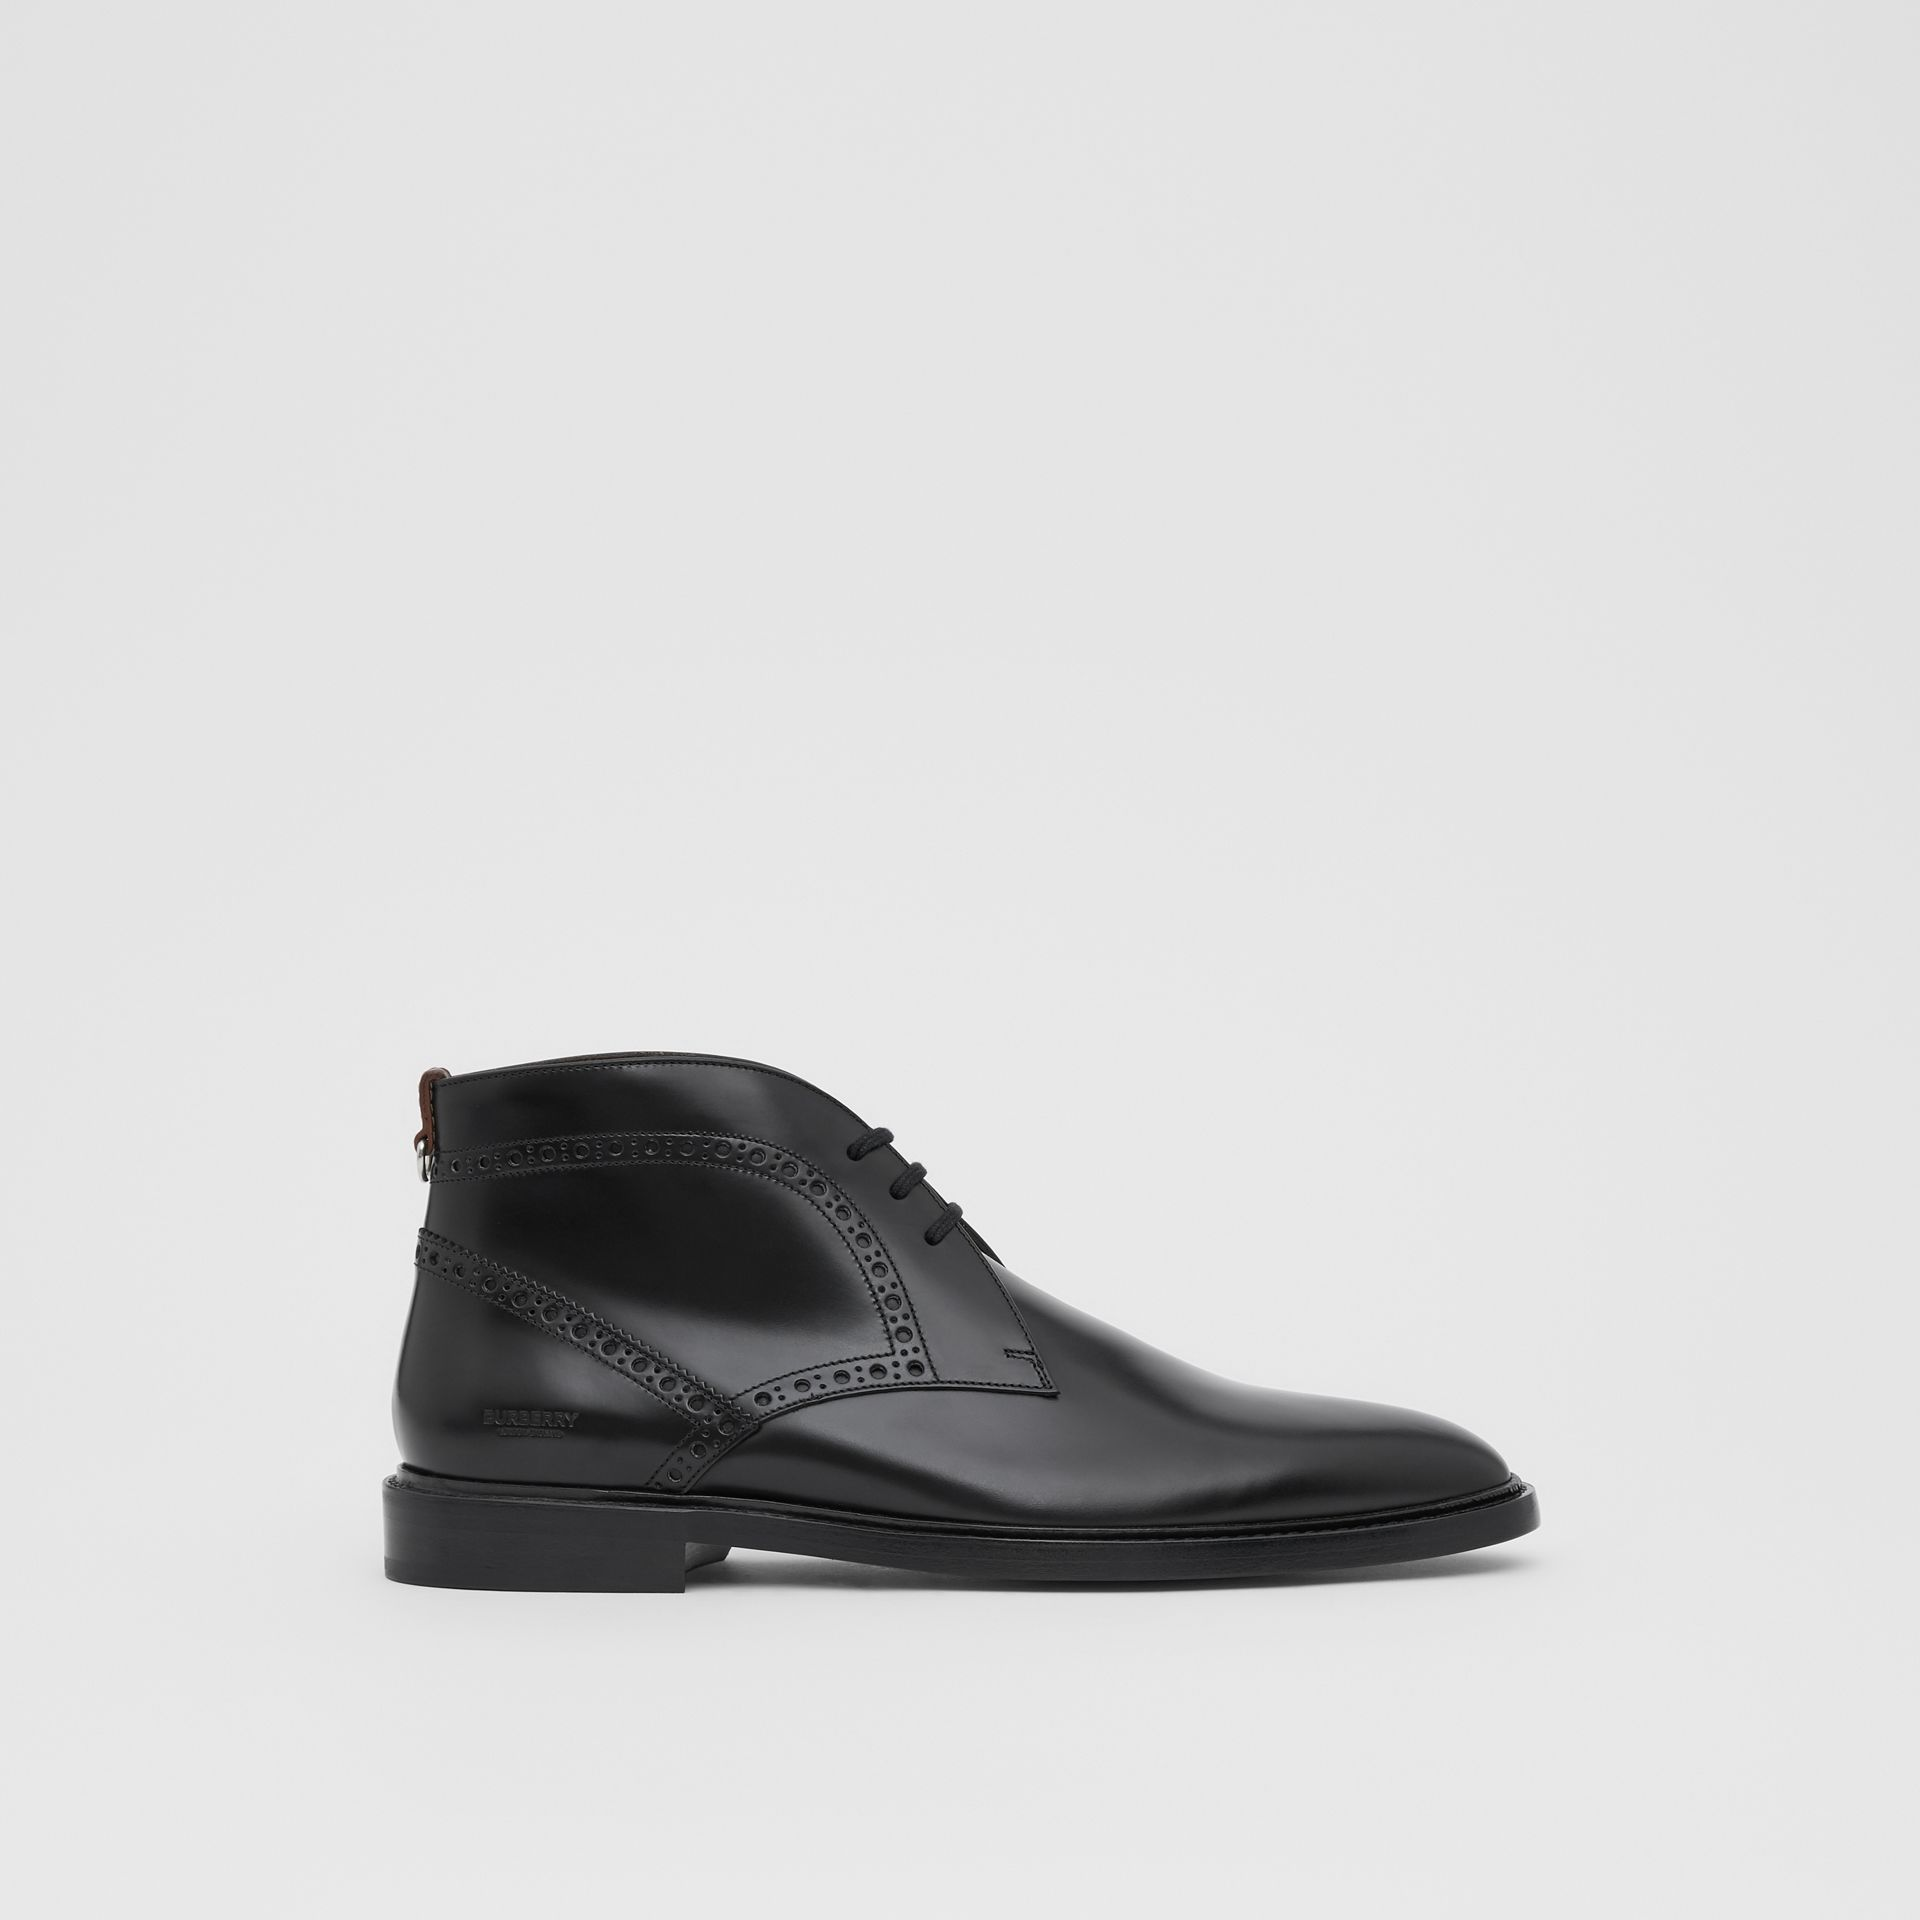 Brogue Detail Leather Boots in Black - Men | Burberry - gallery image 5